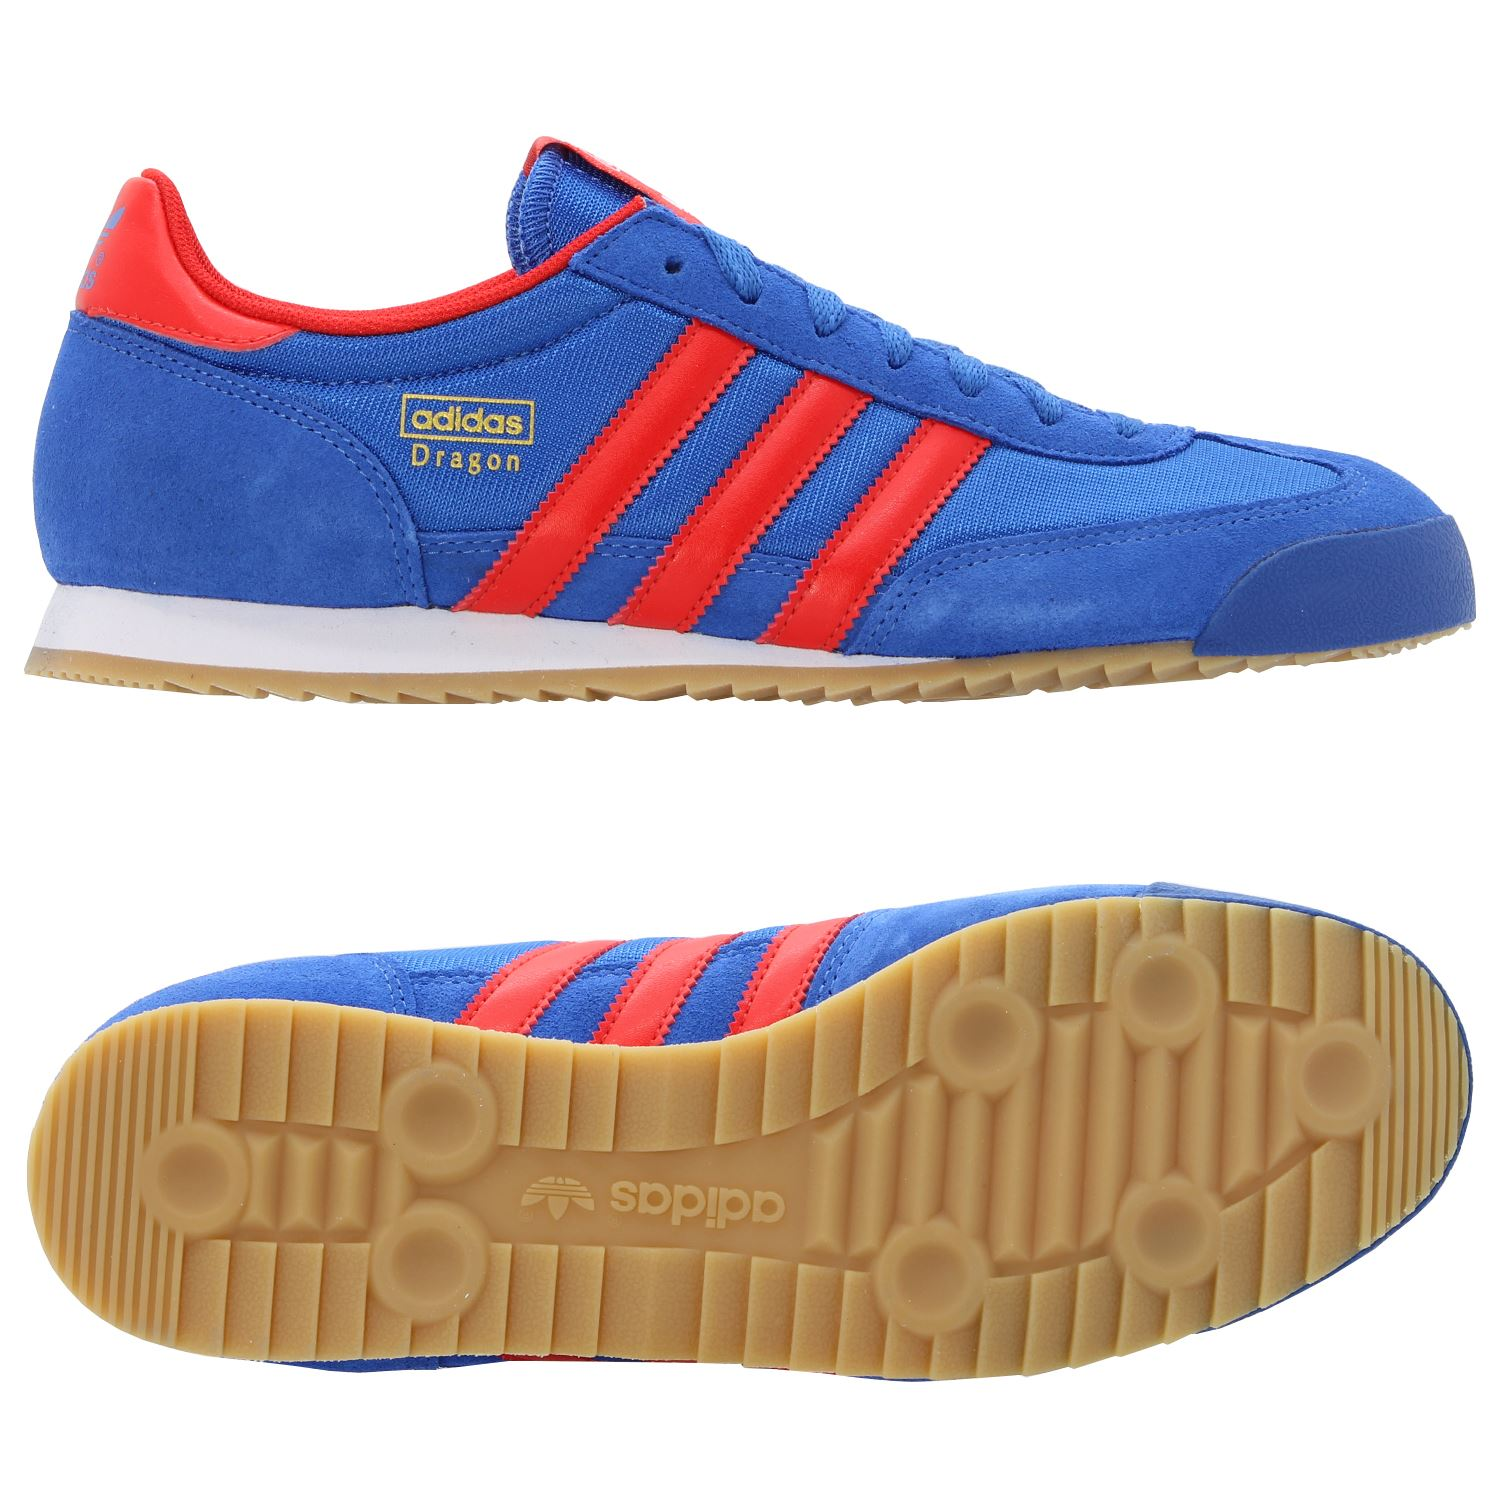 adidas dragon shoes blue red